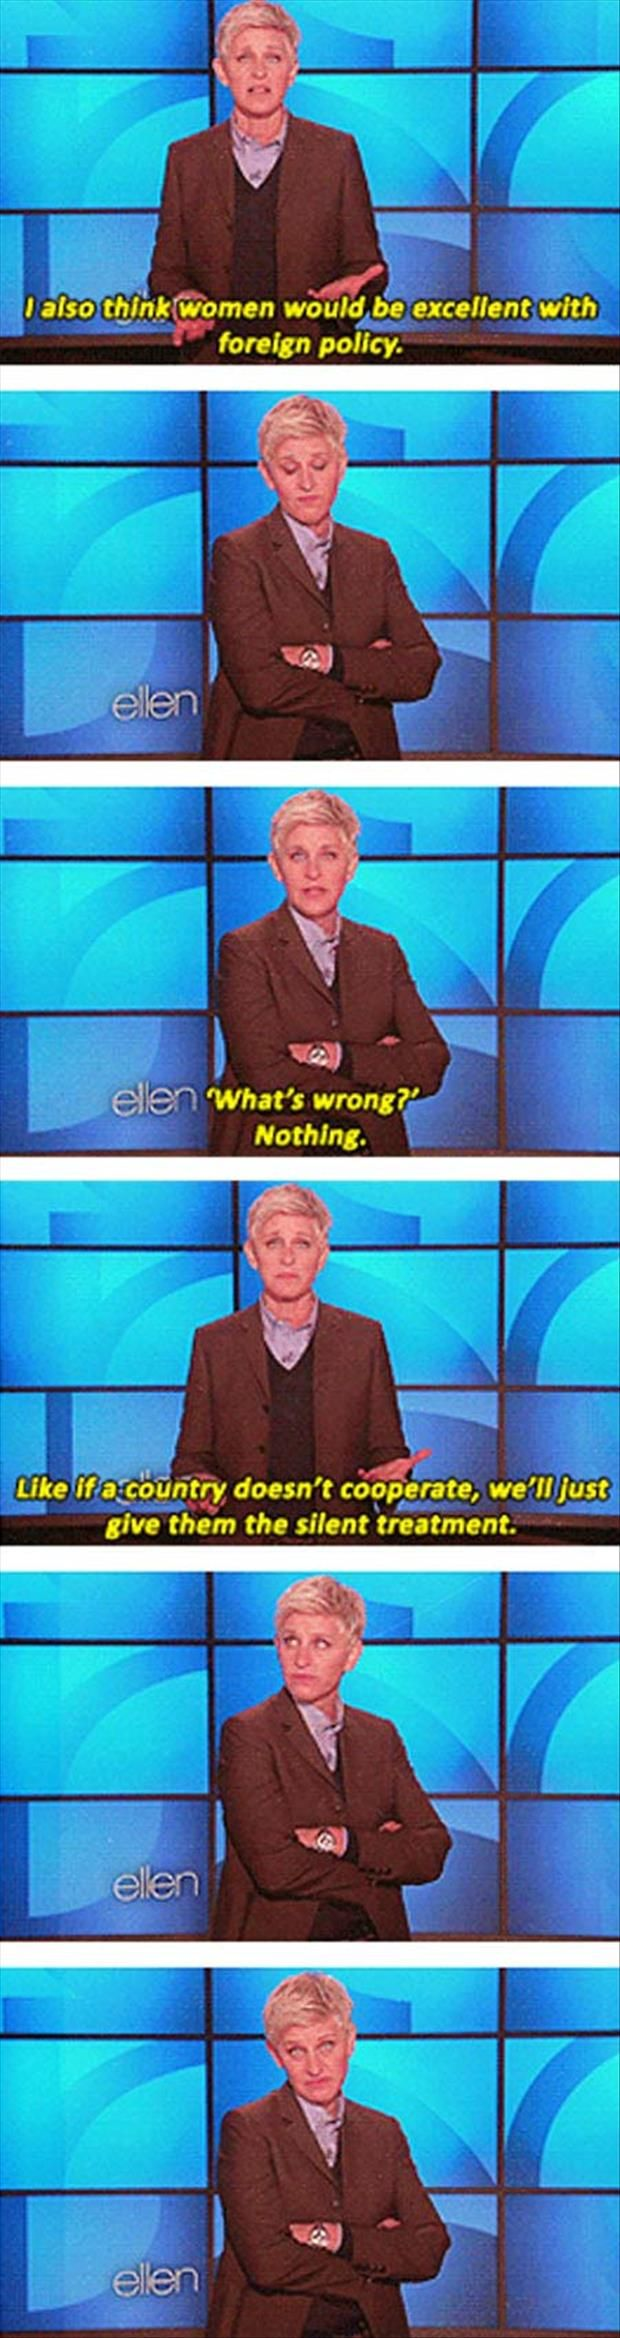 Funny Pictures – 66 Pics: Ellen Degeneres, Laughing, Funny Pictures, Giggles, Foreign Policy, Random, Funny Stuff, Bring Peace, Ellen Degenerative